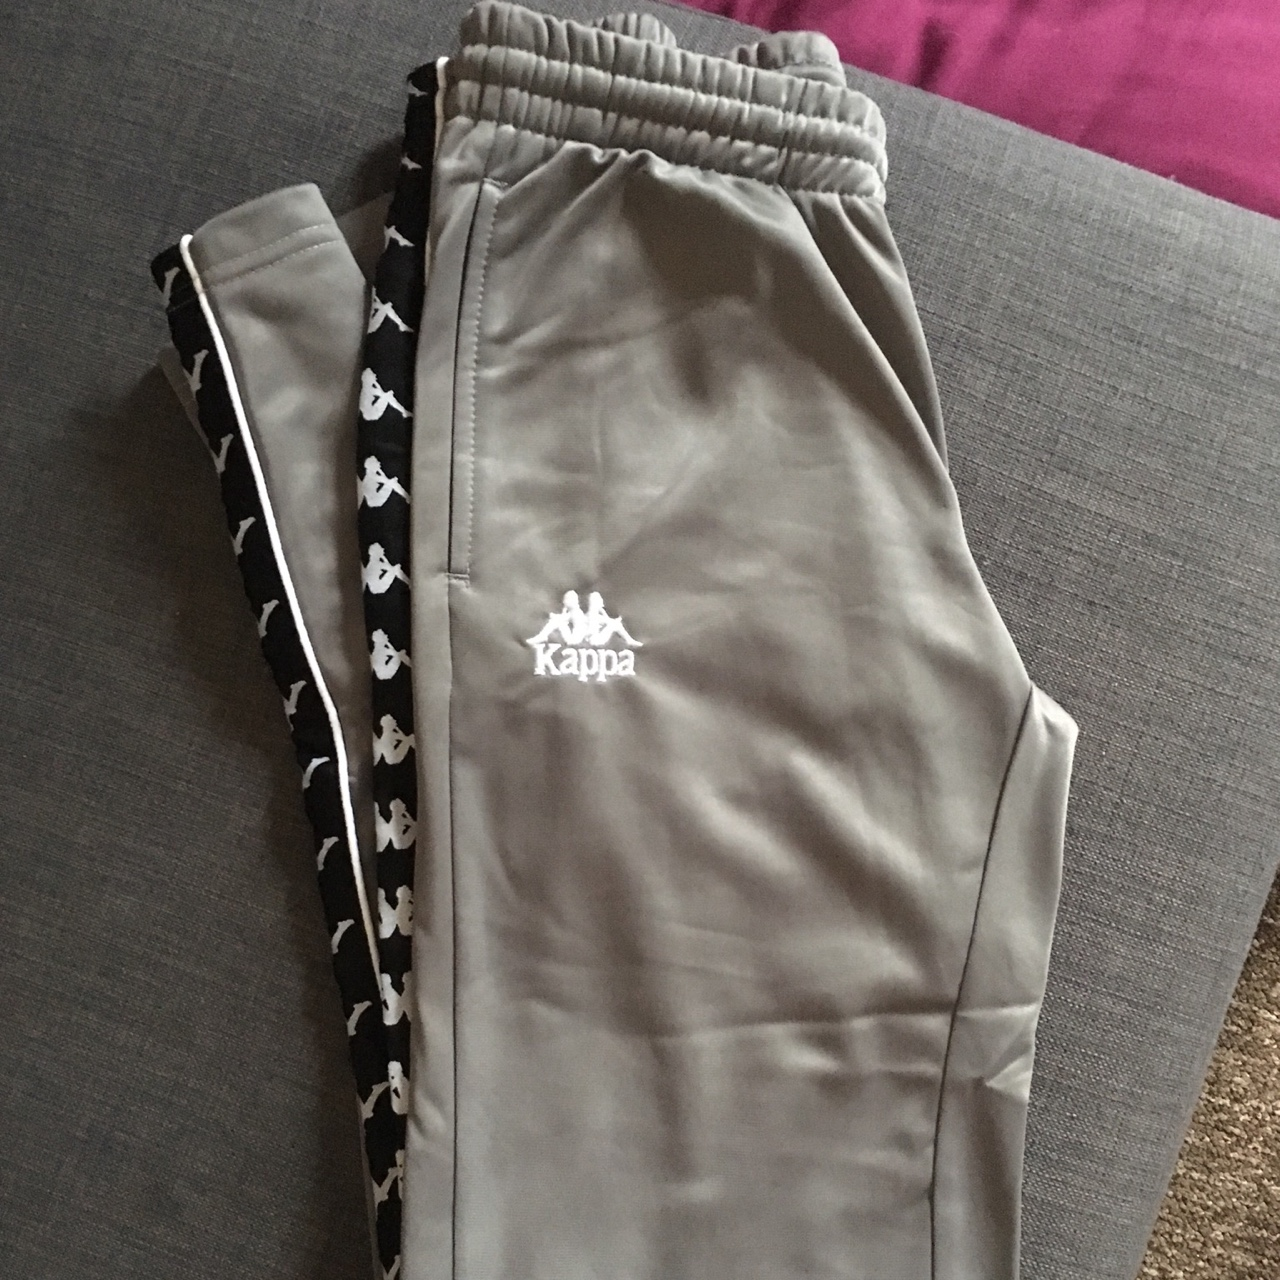 Kappa tracksuit bottoms in grey Size small Brand Depop